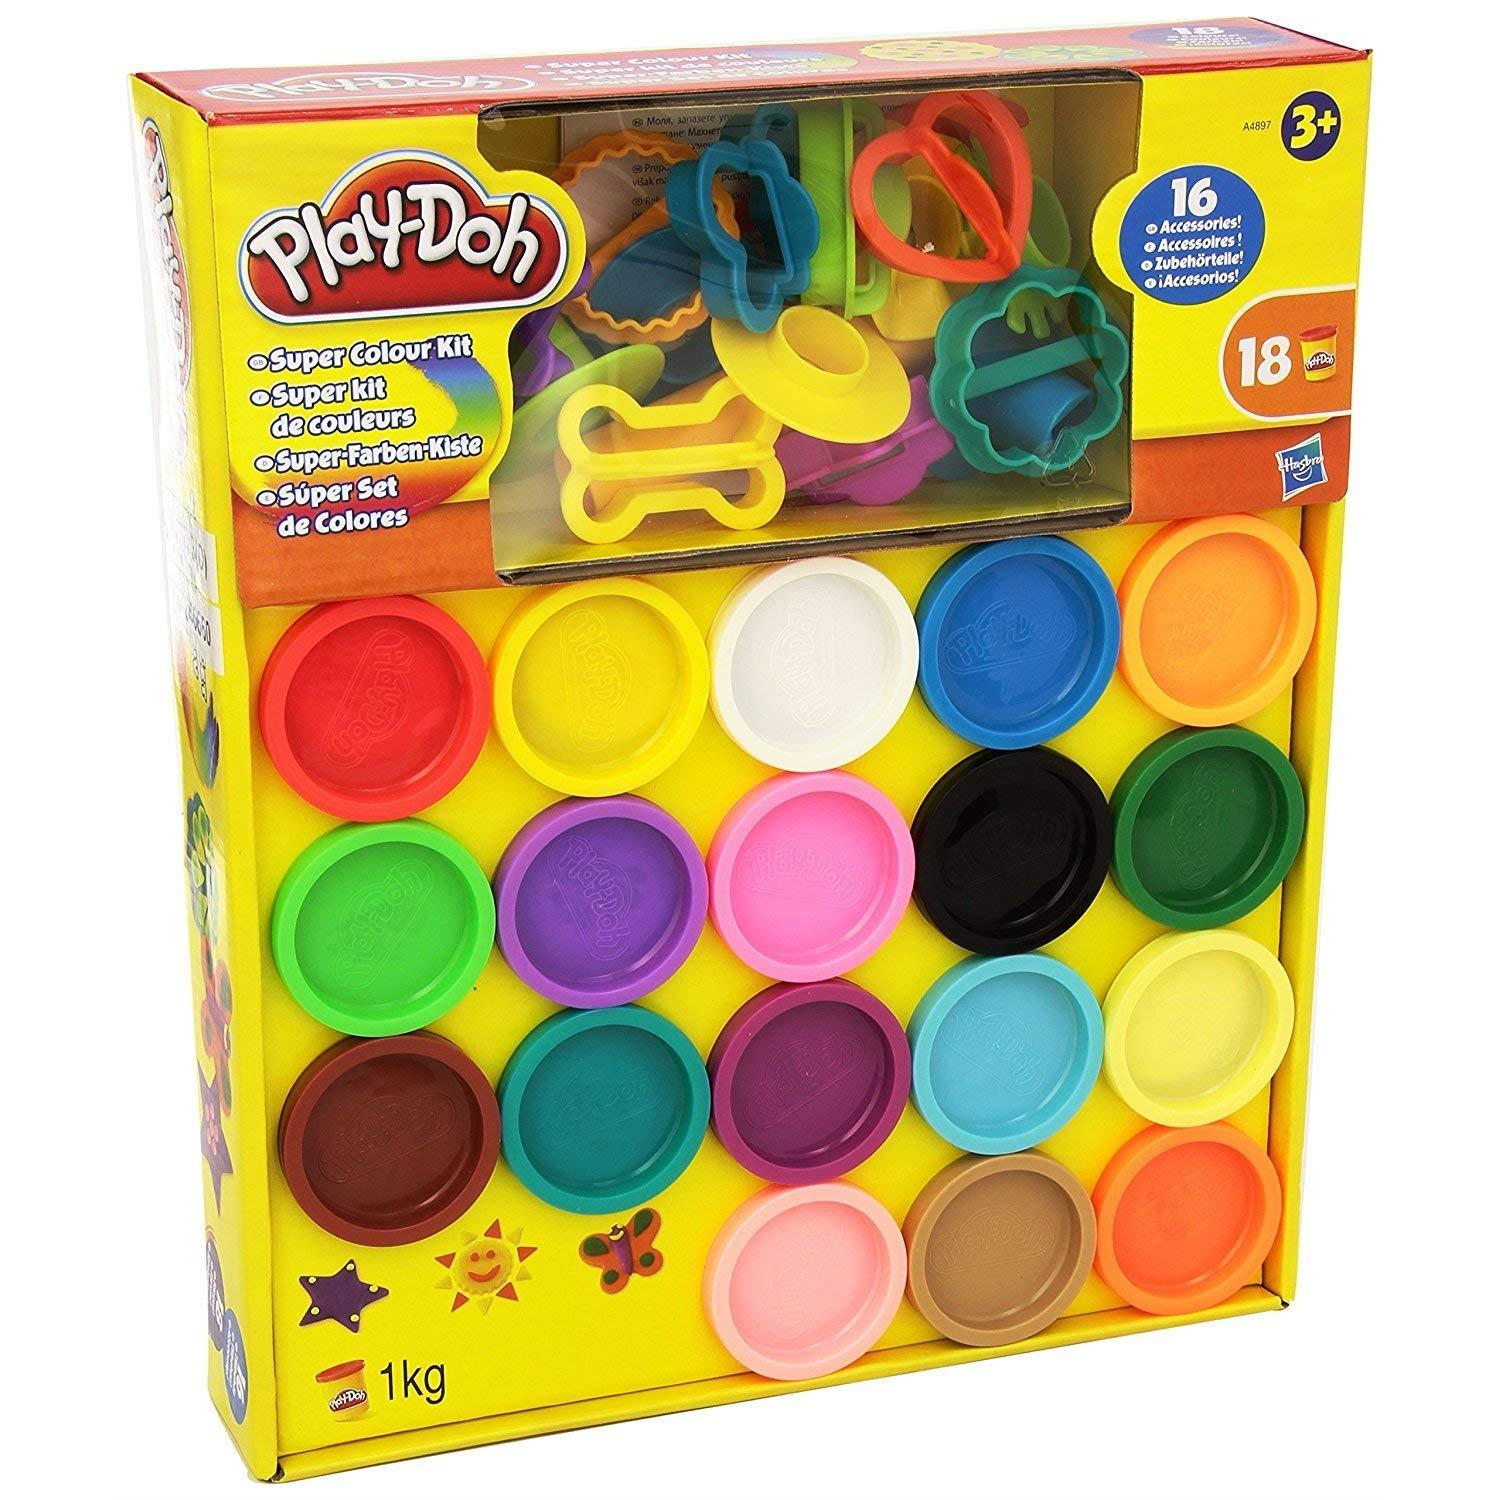 Trampolin Basteln Hasbro A4897 Play Doh Super Colour Kit